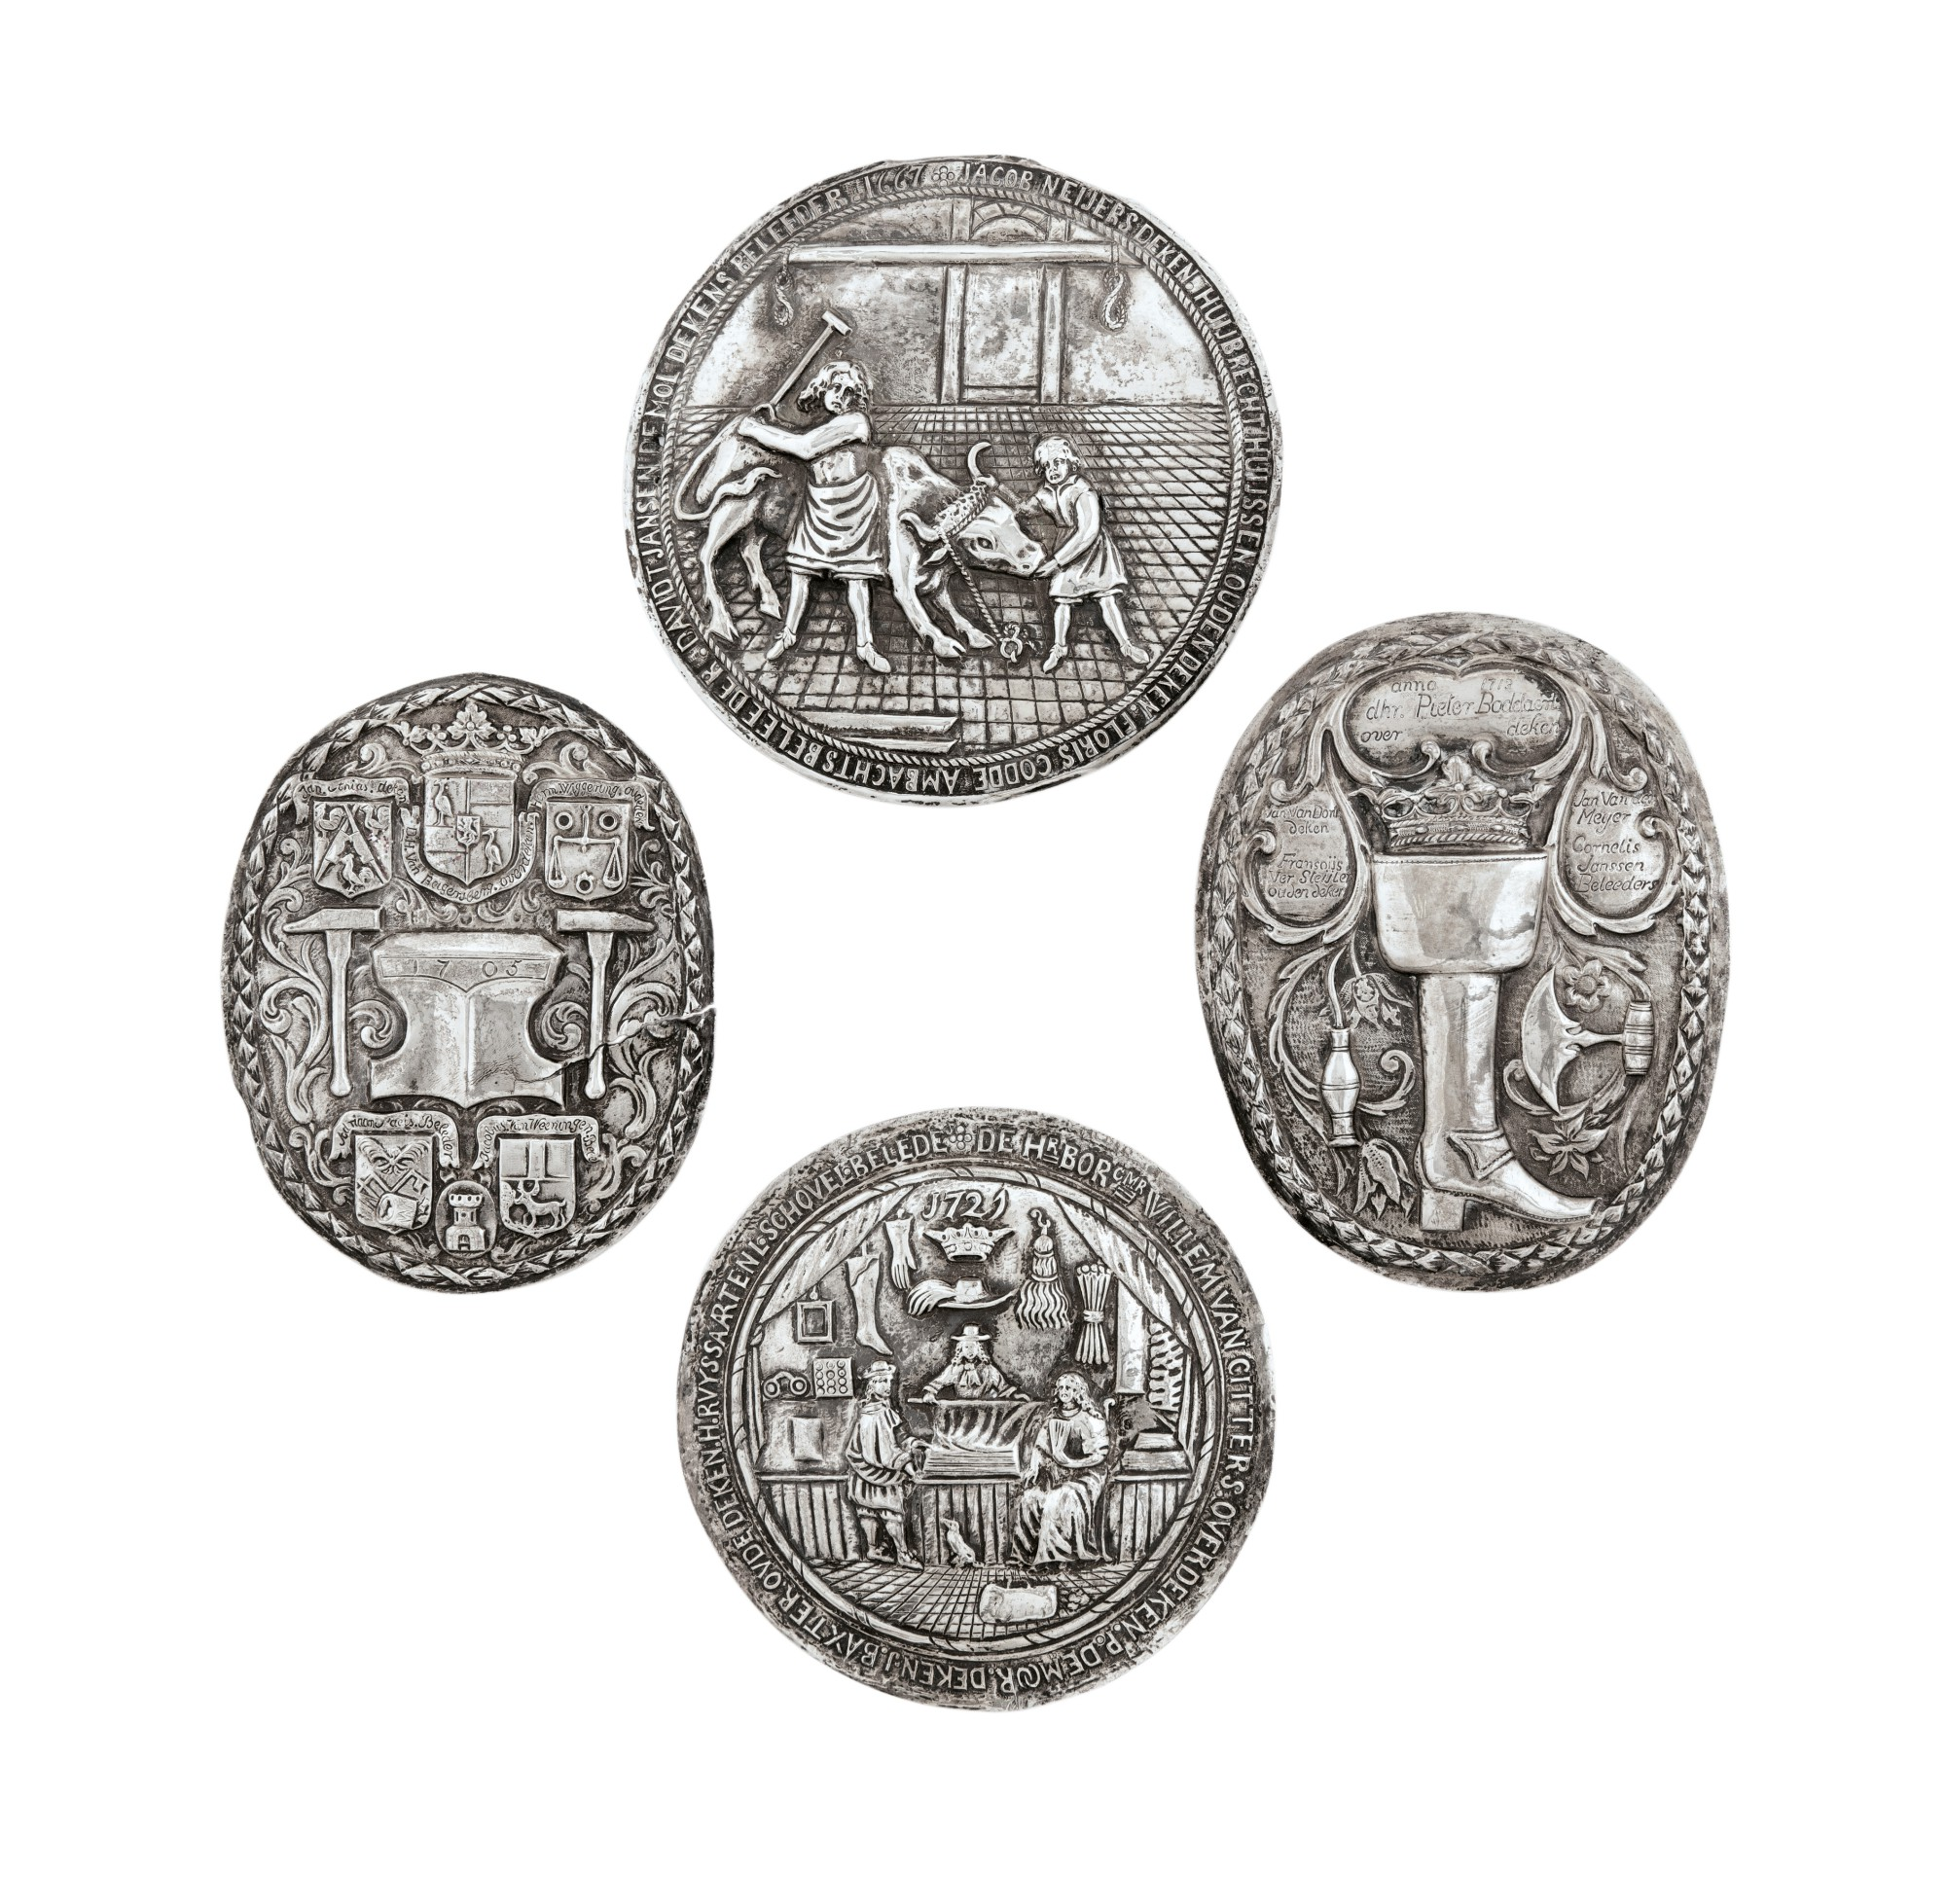 FOUR DUTCH SILVER GUILD SHIELDS, UNMARKED, 1665-1725 [QUATRE PLAQUES DE CORPORATION EN ARGENT, NON POINÇONNÉES, HOLLANDE, 1665-1725]